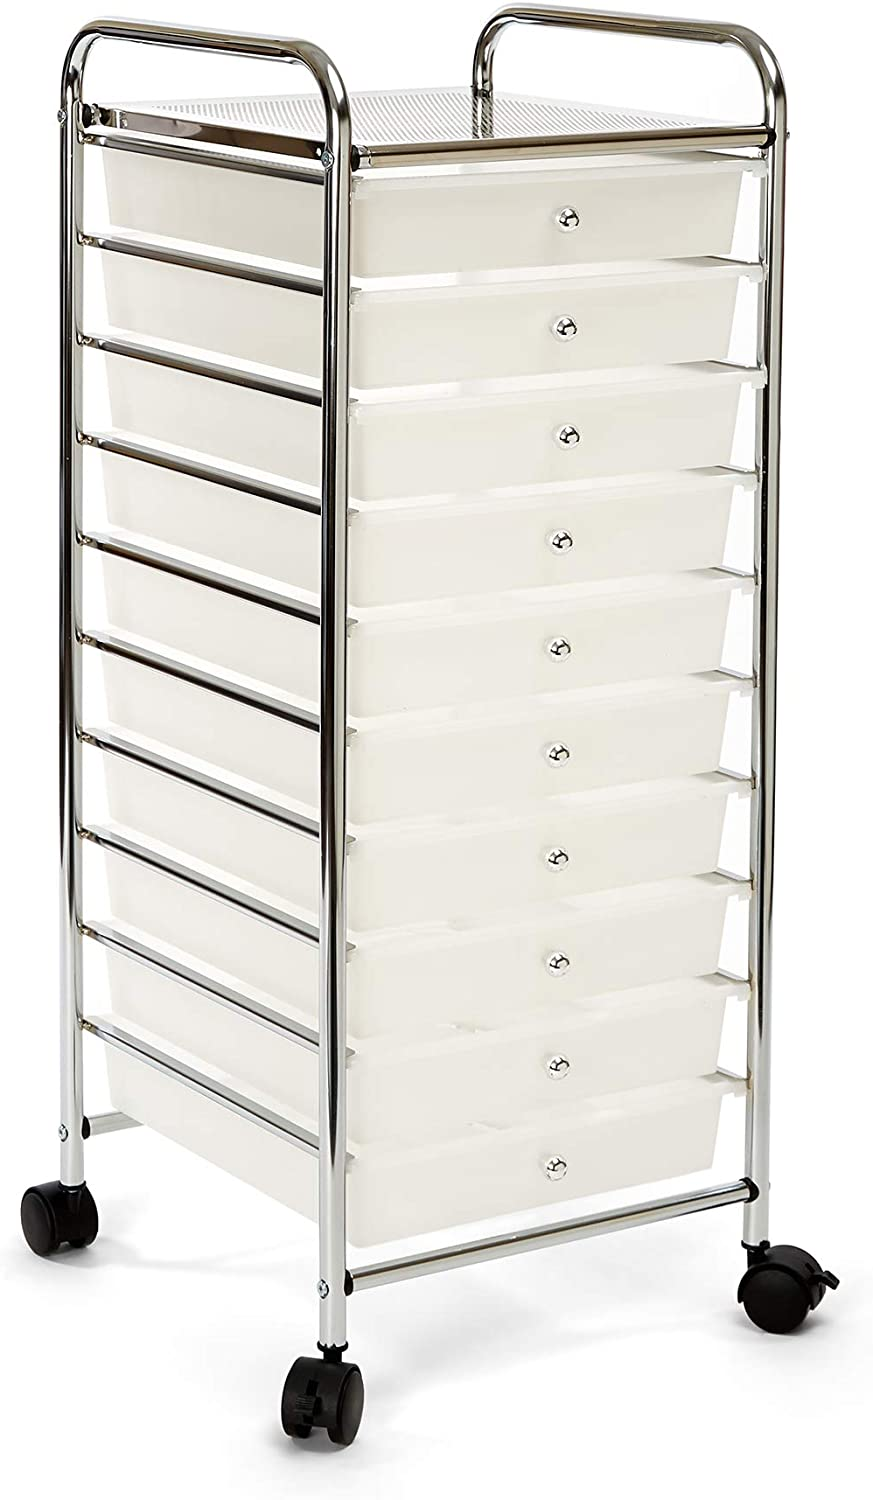 Seville Classics Large 10-Drawer Multipurpose Mobile Rolling Utility Storage Organizer Cart, White: Home & Kitchen